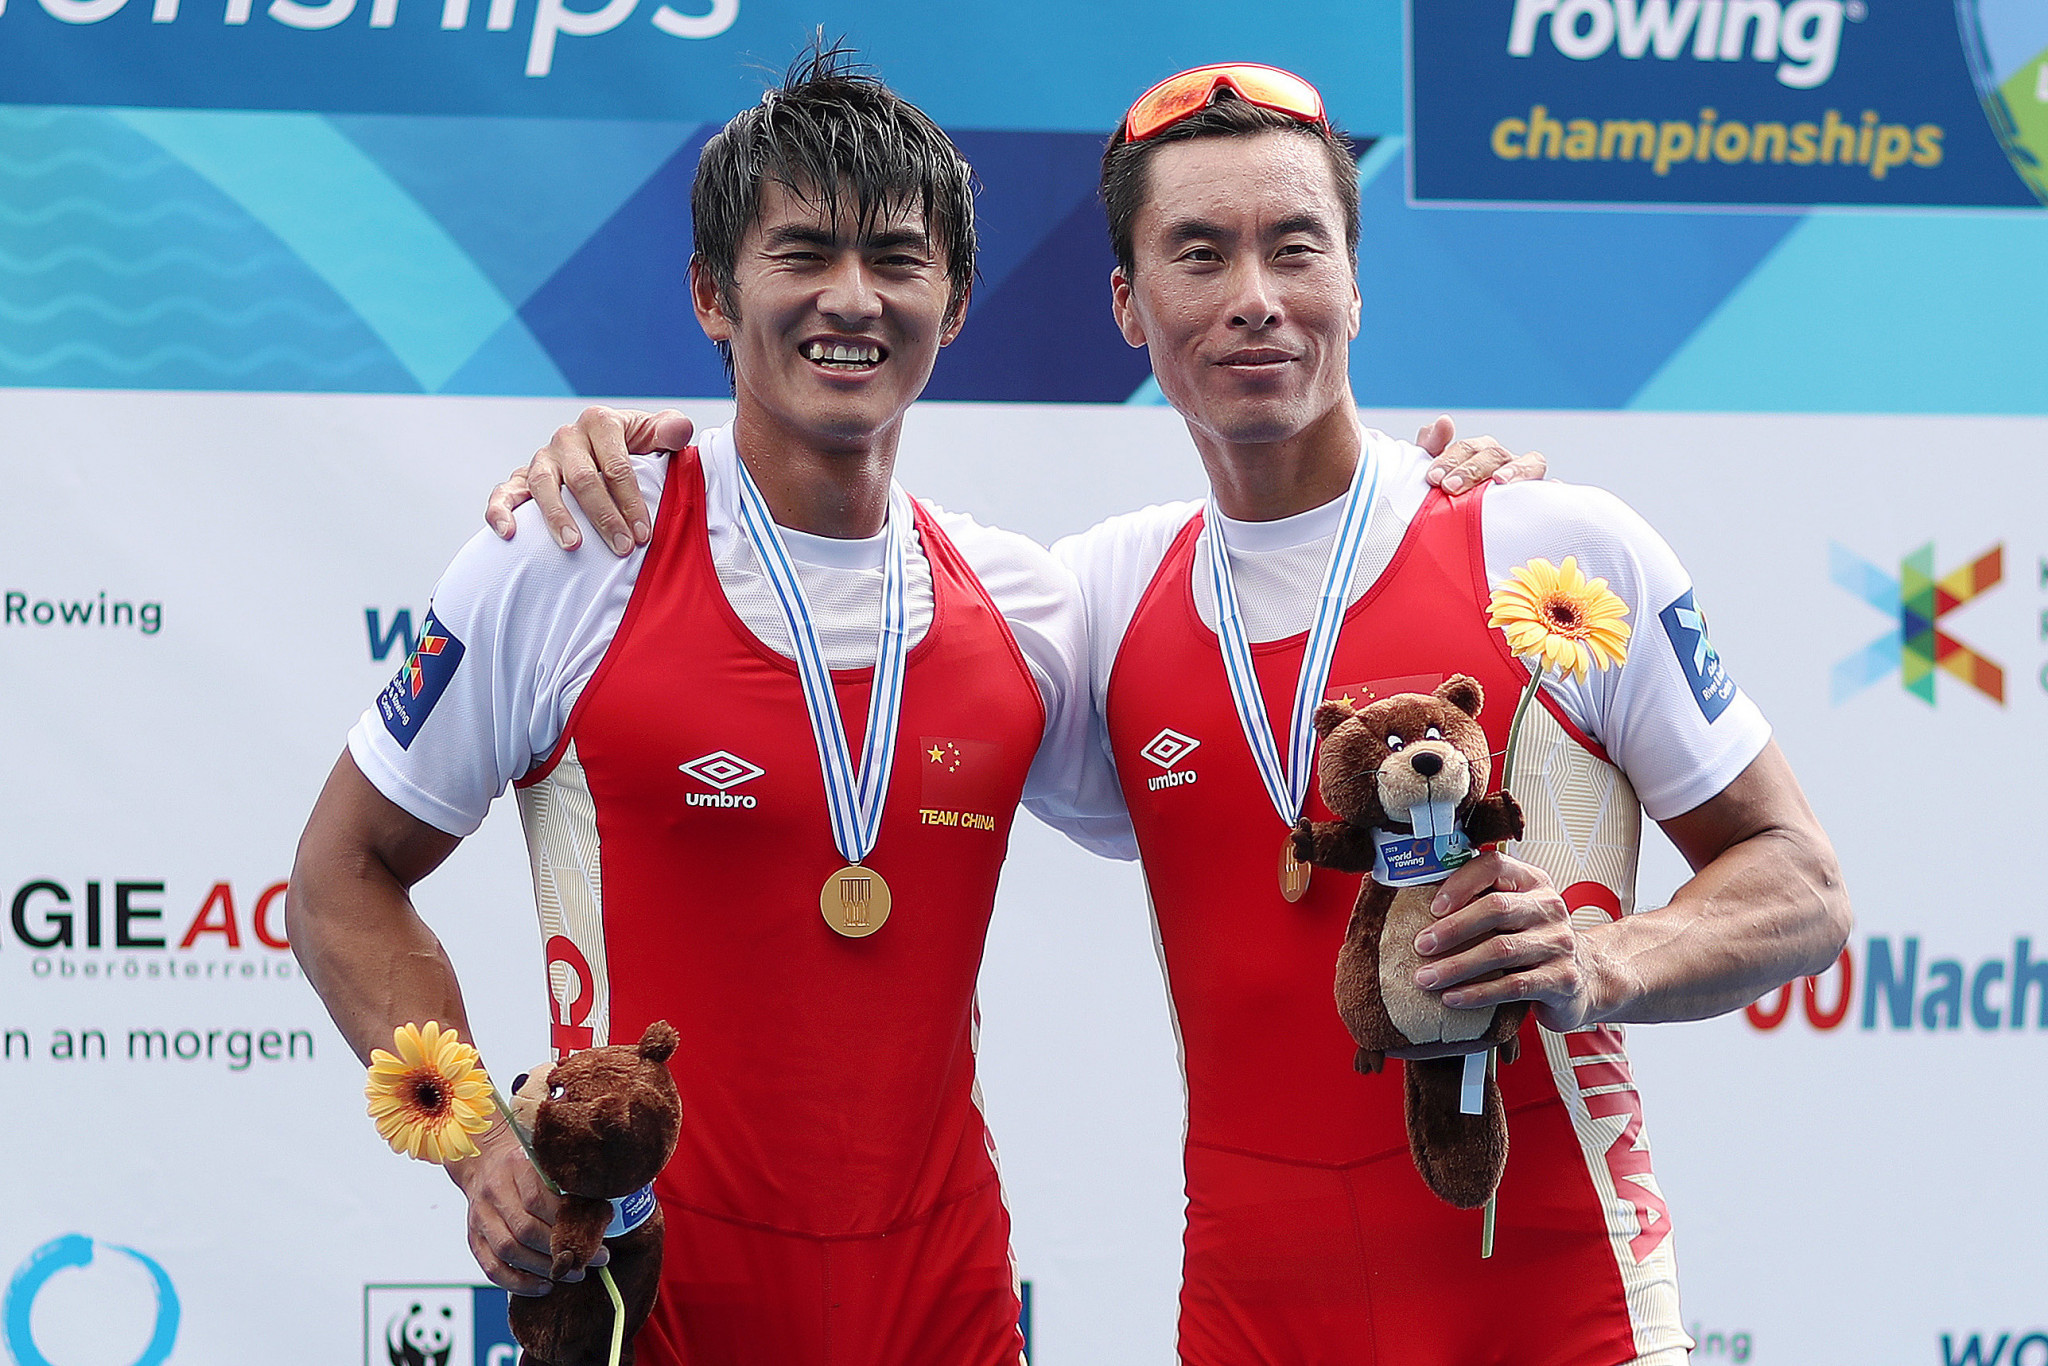 China's Zhiyu Liu and Liang Zhang celebrate winning the gold medal in the men's double sculls final at the 2019 World Rowing Championships in Ottensheim - the last time the event took place ©Getty Images